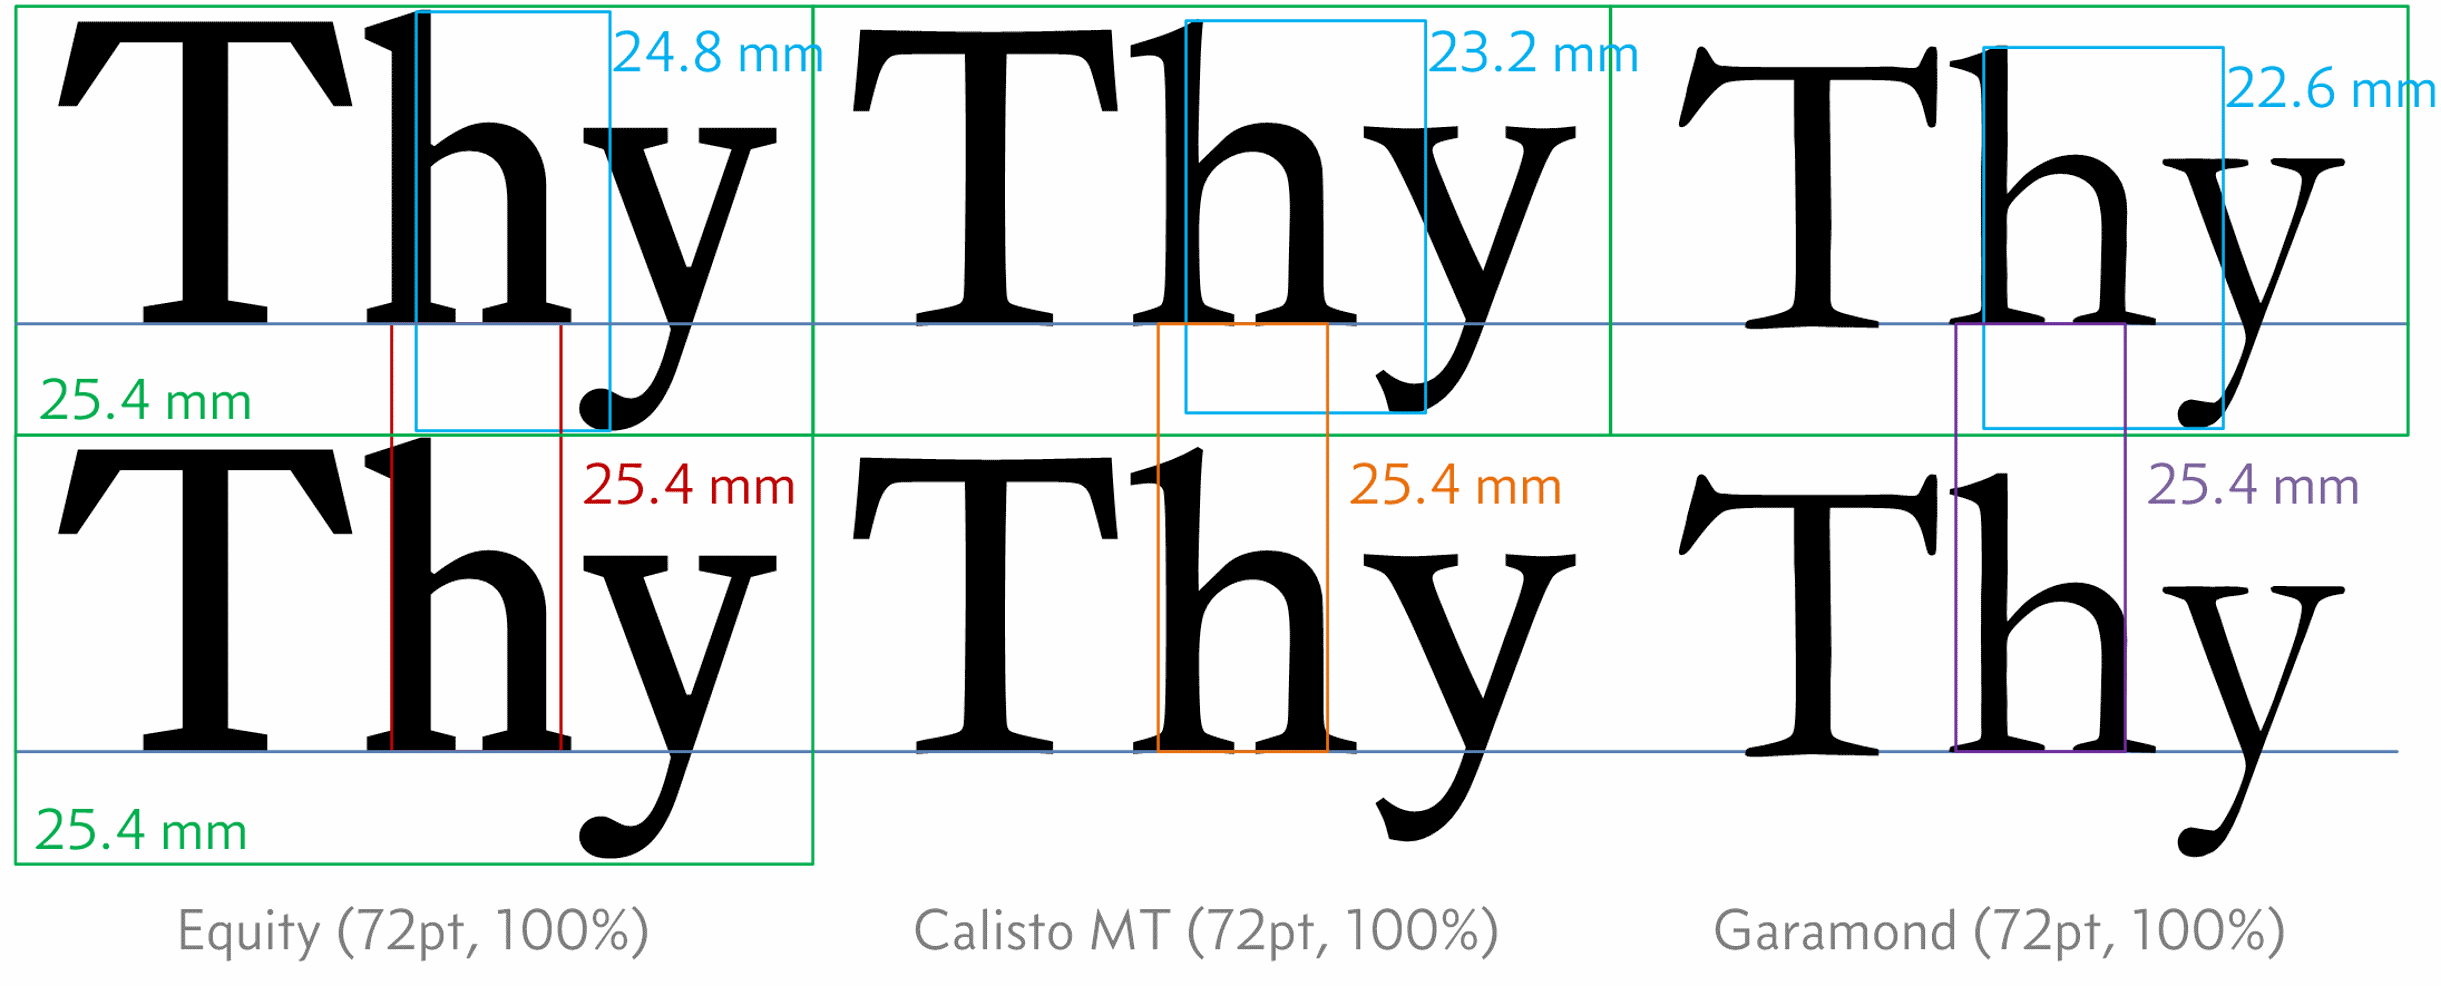 Figure 3.12 - Point size with different fonts in Visio